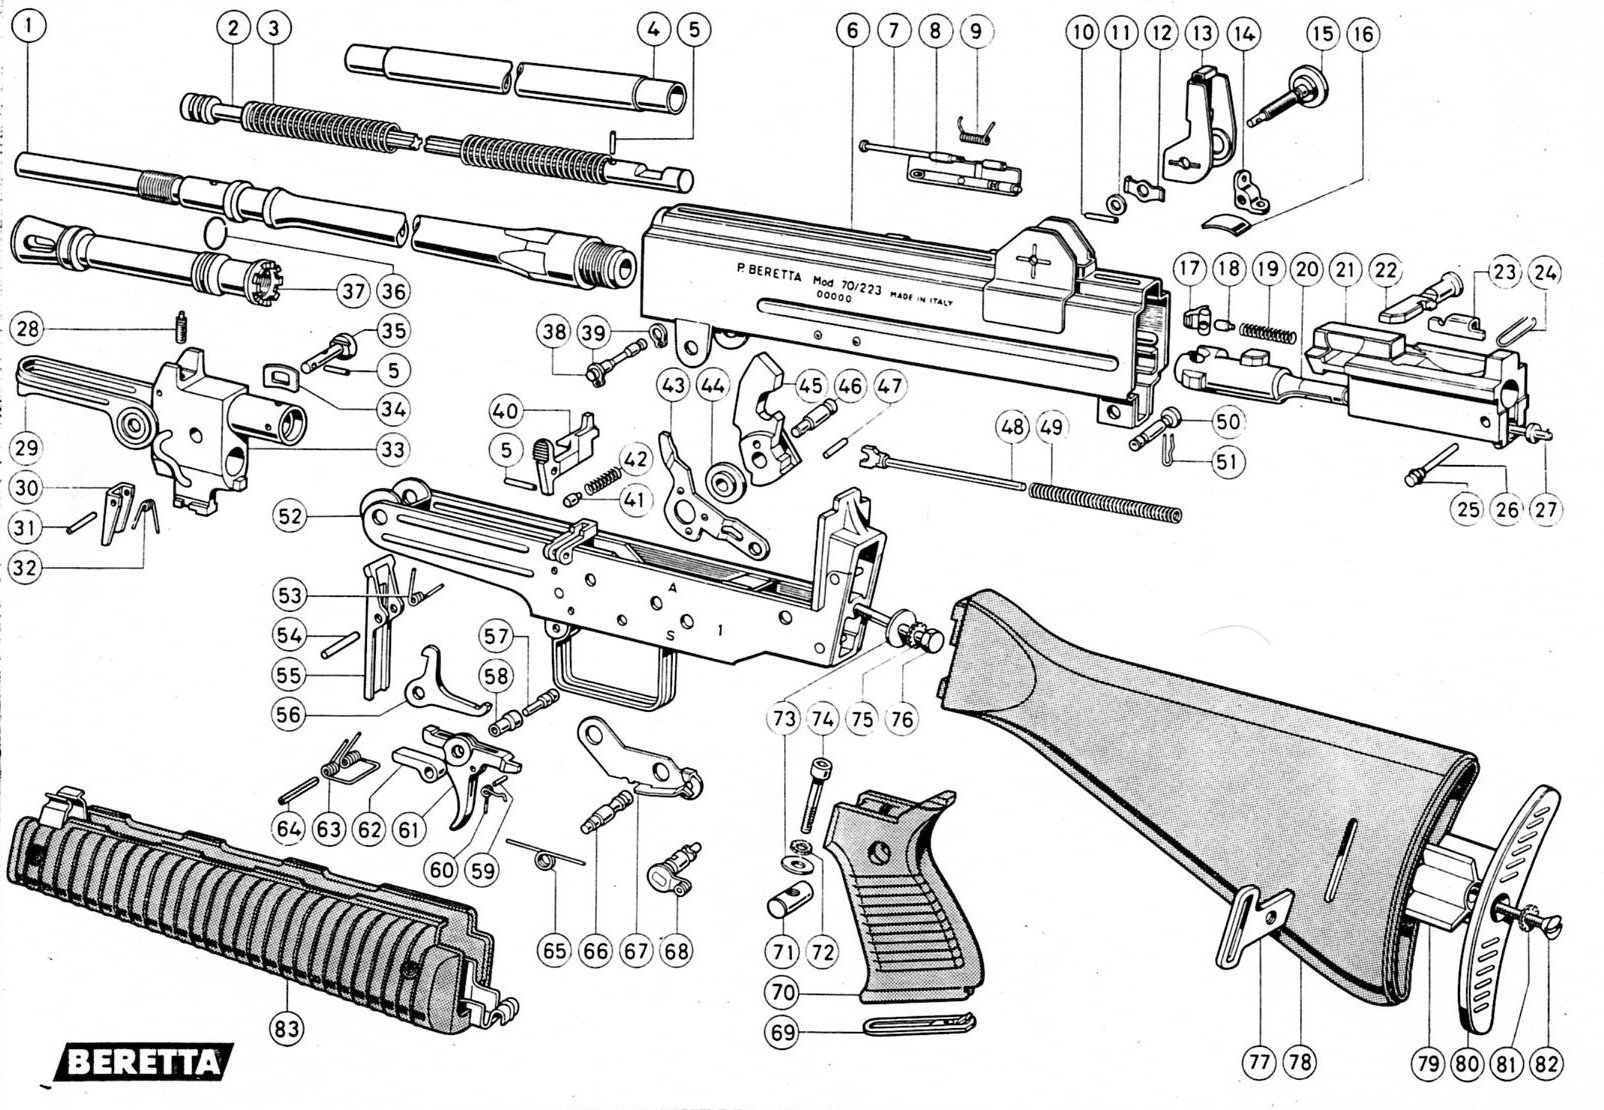 m16 exploded diagram pull up muscles worked ar 15 schematic free engine image for user